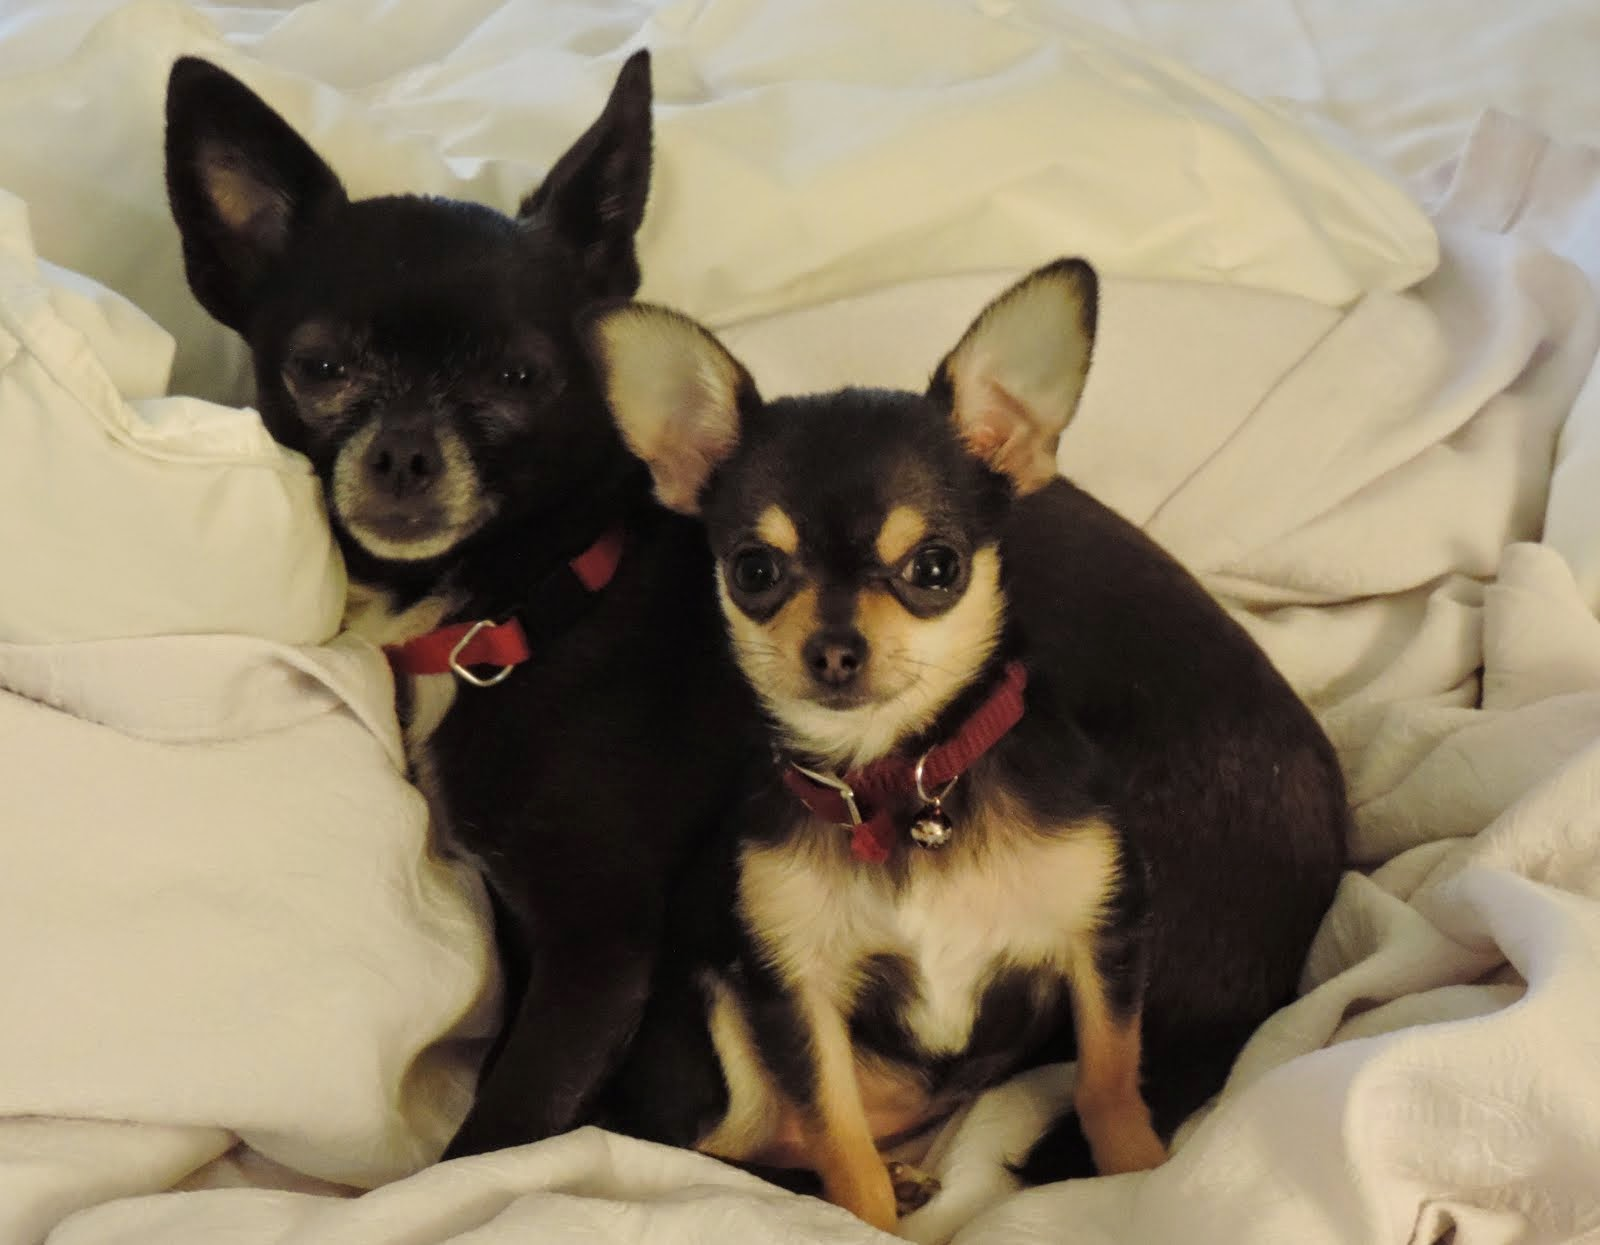 Our Chi's - Cheyenne and Jet